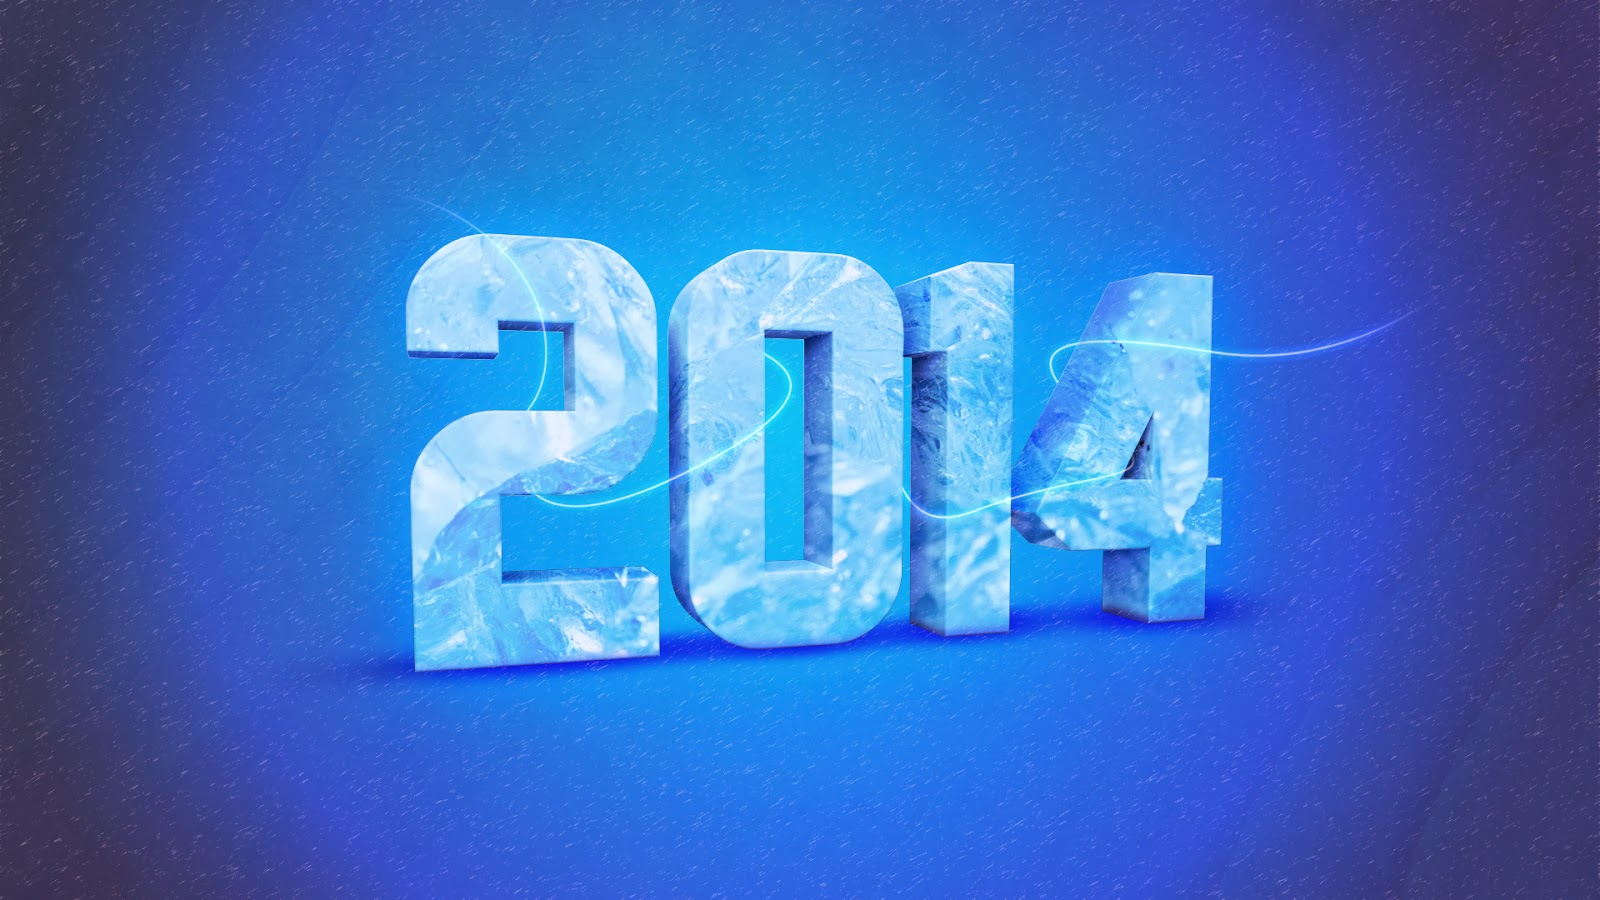 3d 2014 Year HD Wallpaper